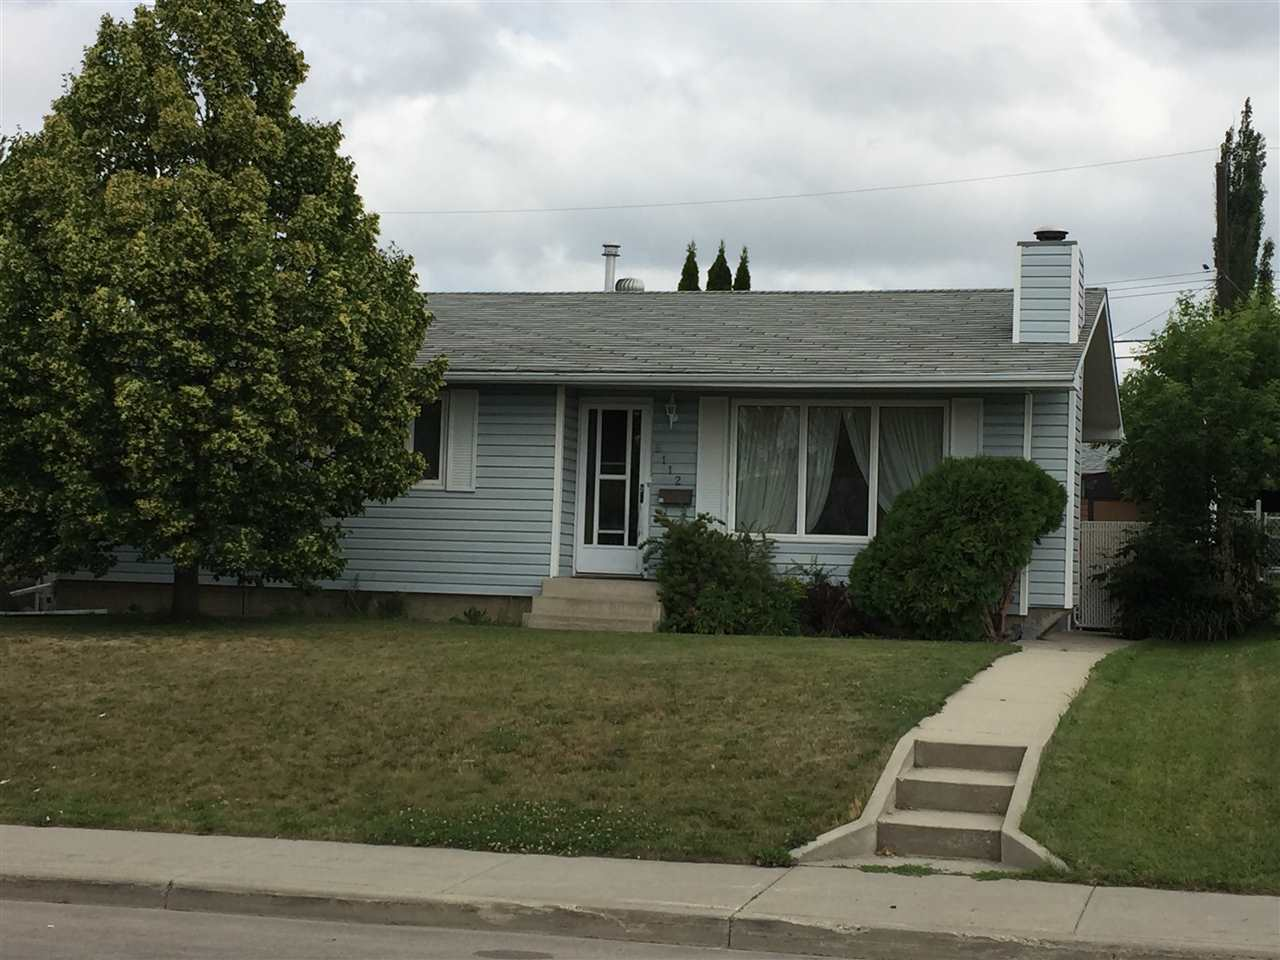 Main Photo: 6112 140 Avenue in Edmonton: Zone 02 House for sale : MLS(r) # E4073817